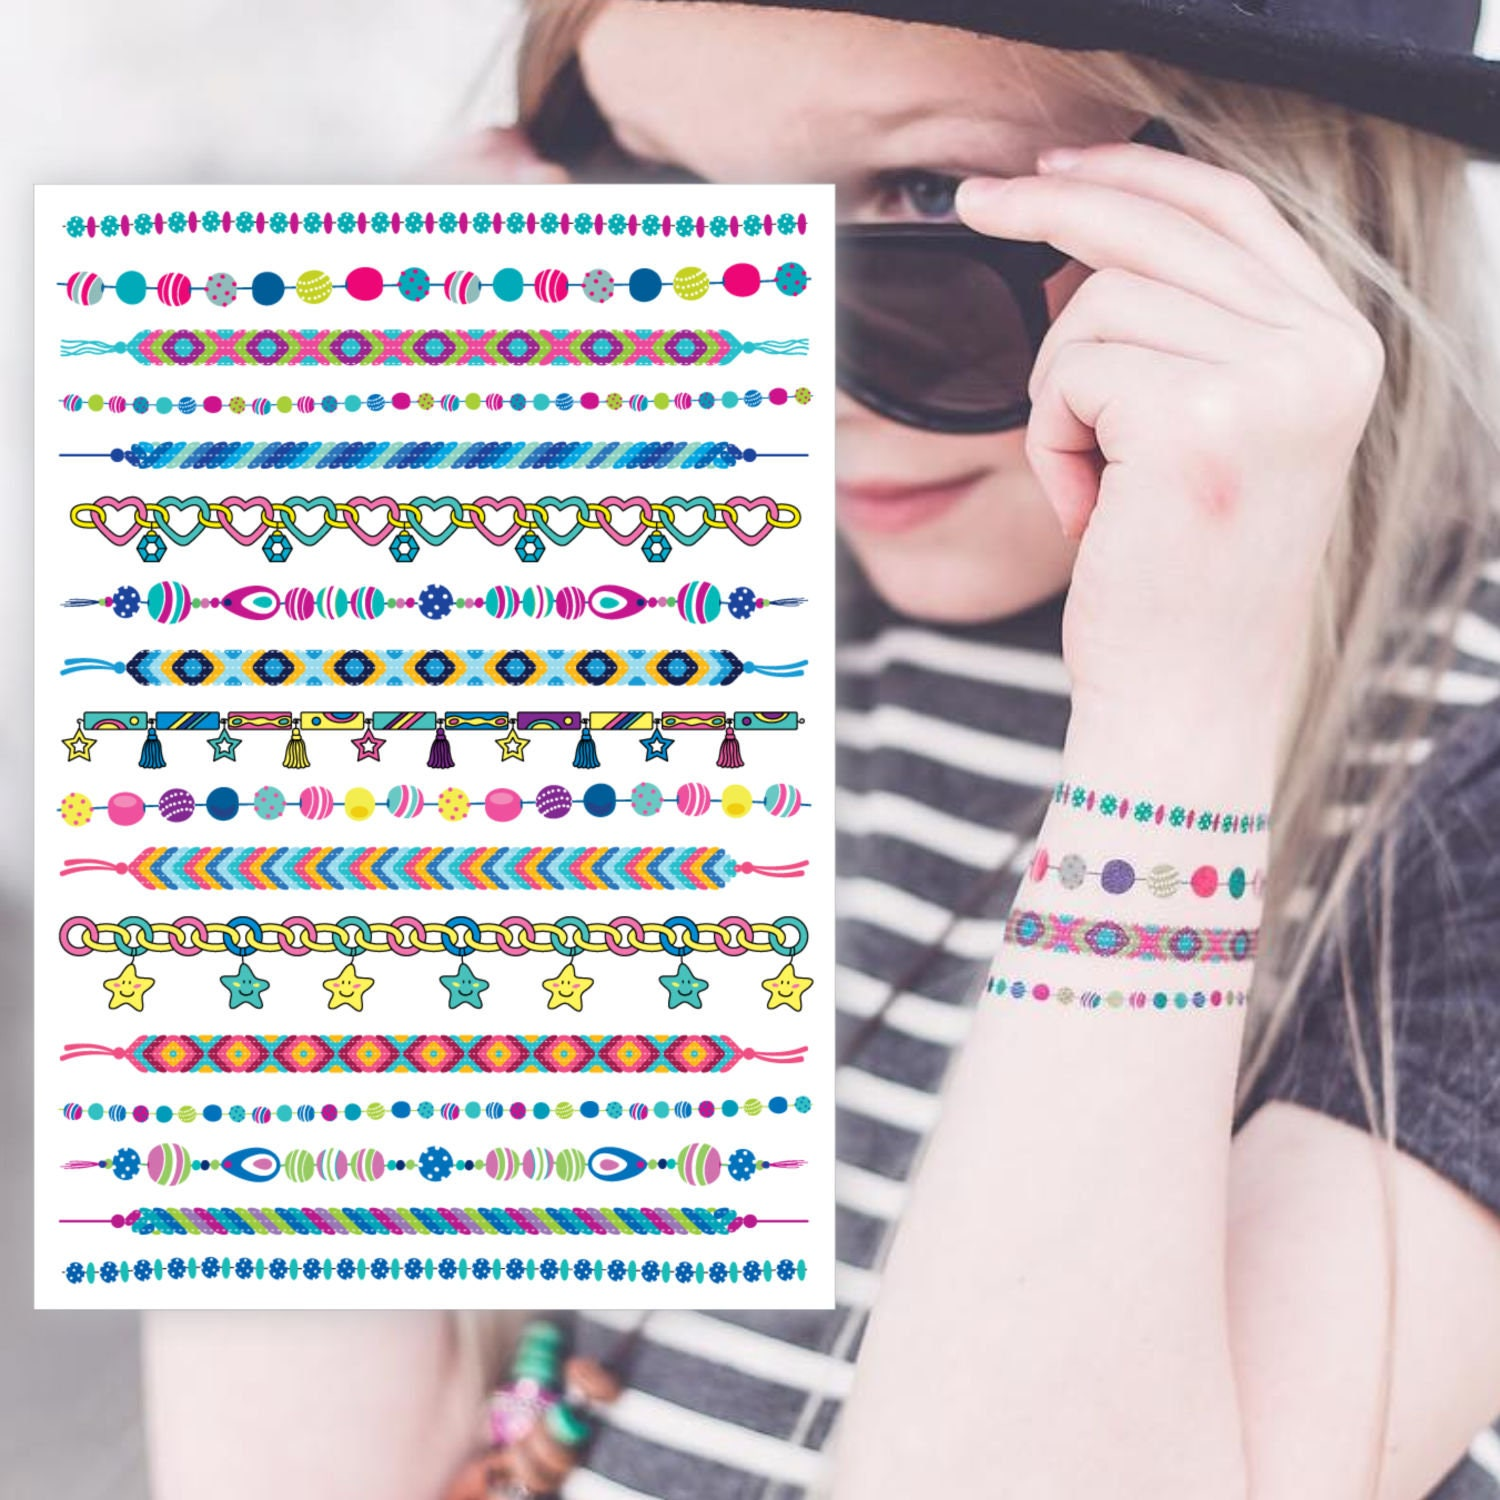 """Temporary tattoo set of bracelets """"Arm candy"""". Chain with charms, hippie friendship tattoo bracelets. Girls party favors, gift for girls."""